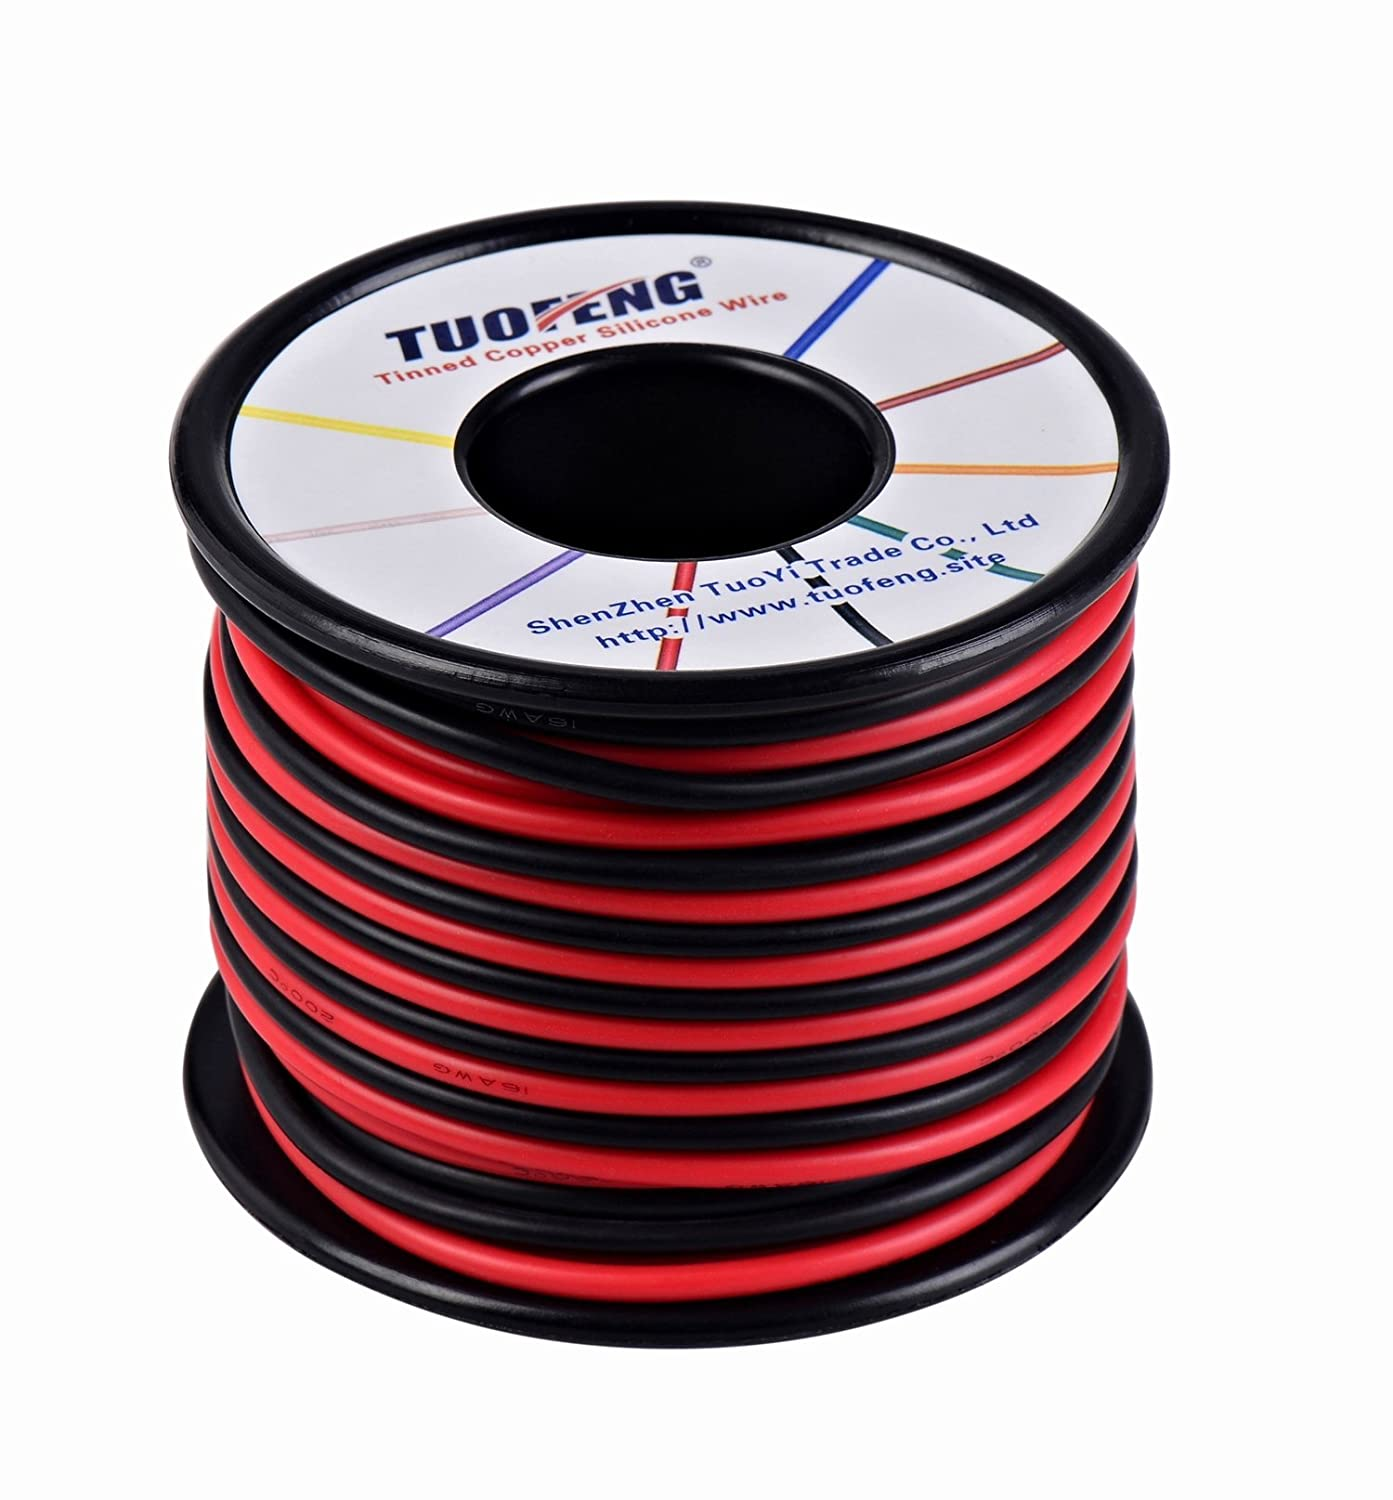 TUOFENG 16 AWG Wire, 20 m silicone wire Soft and Flexible Tinned copper wire High temperature resistance 2 separated wires 10 m Black and 10 m Red Stranded Wire for 3D printer, test leads,RC appli HAERKN